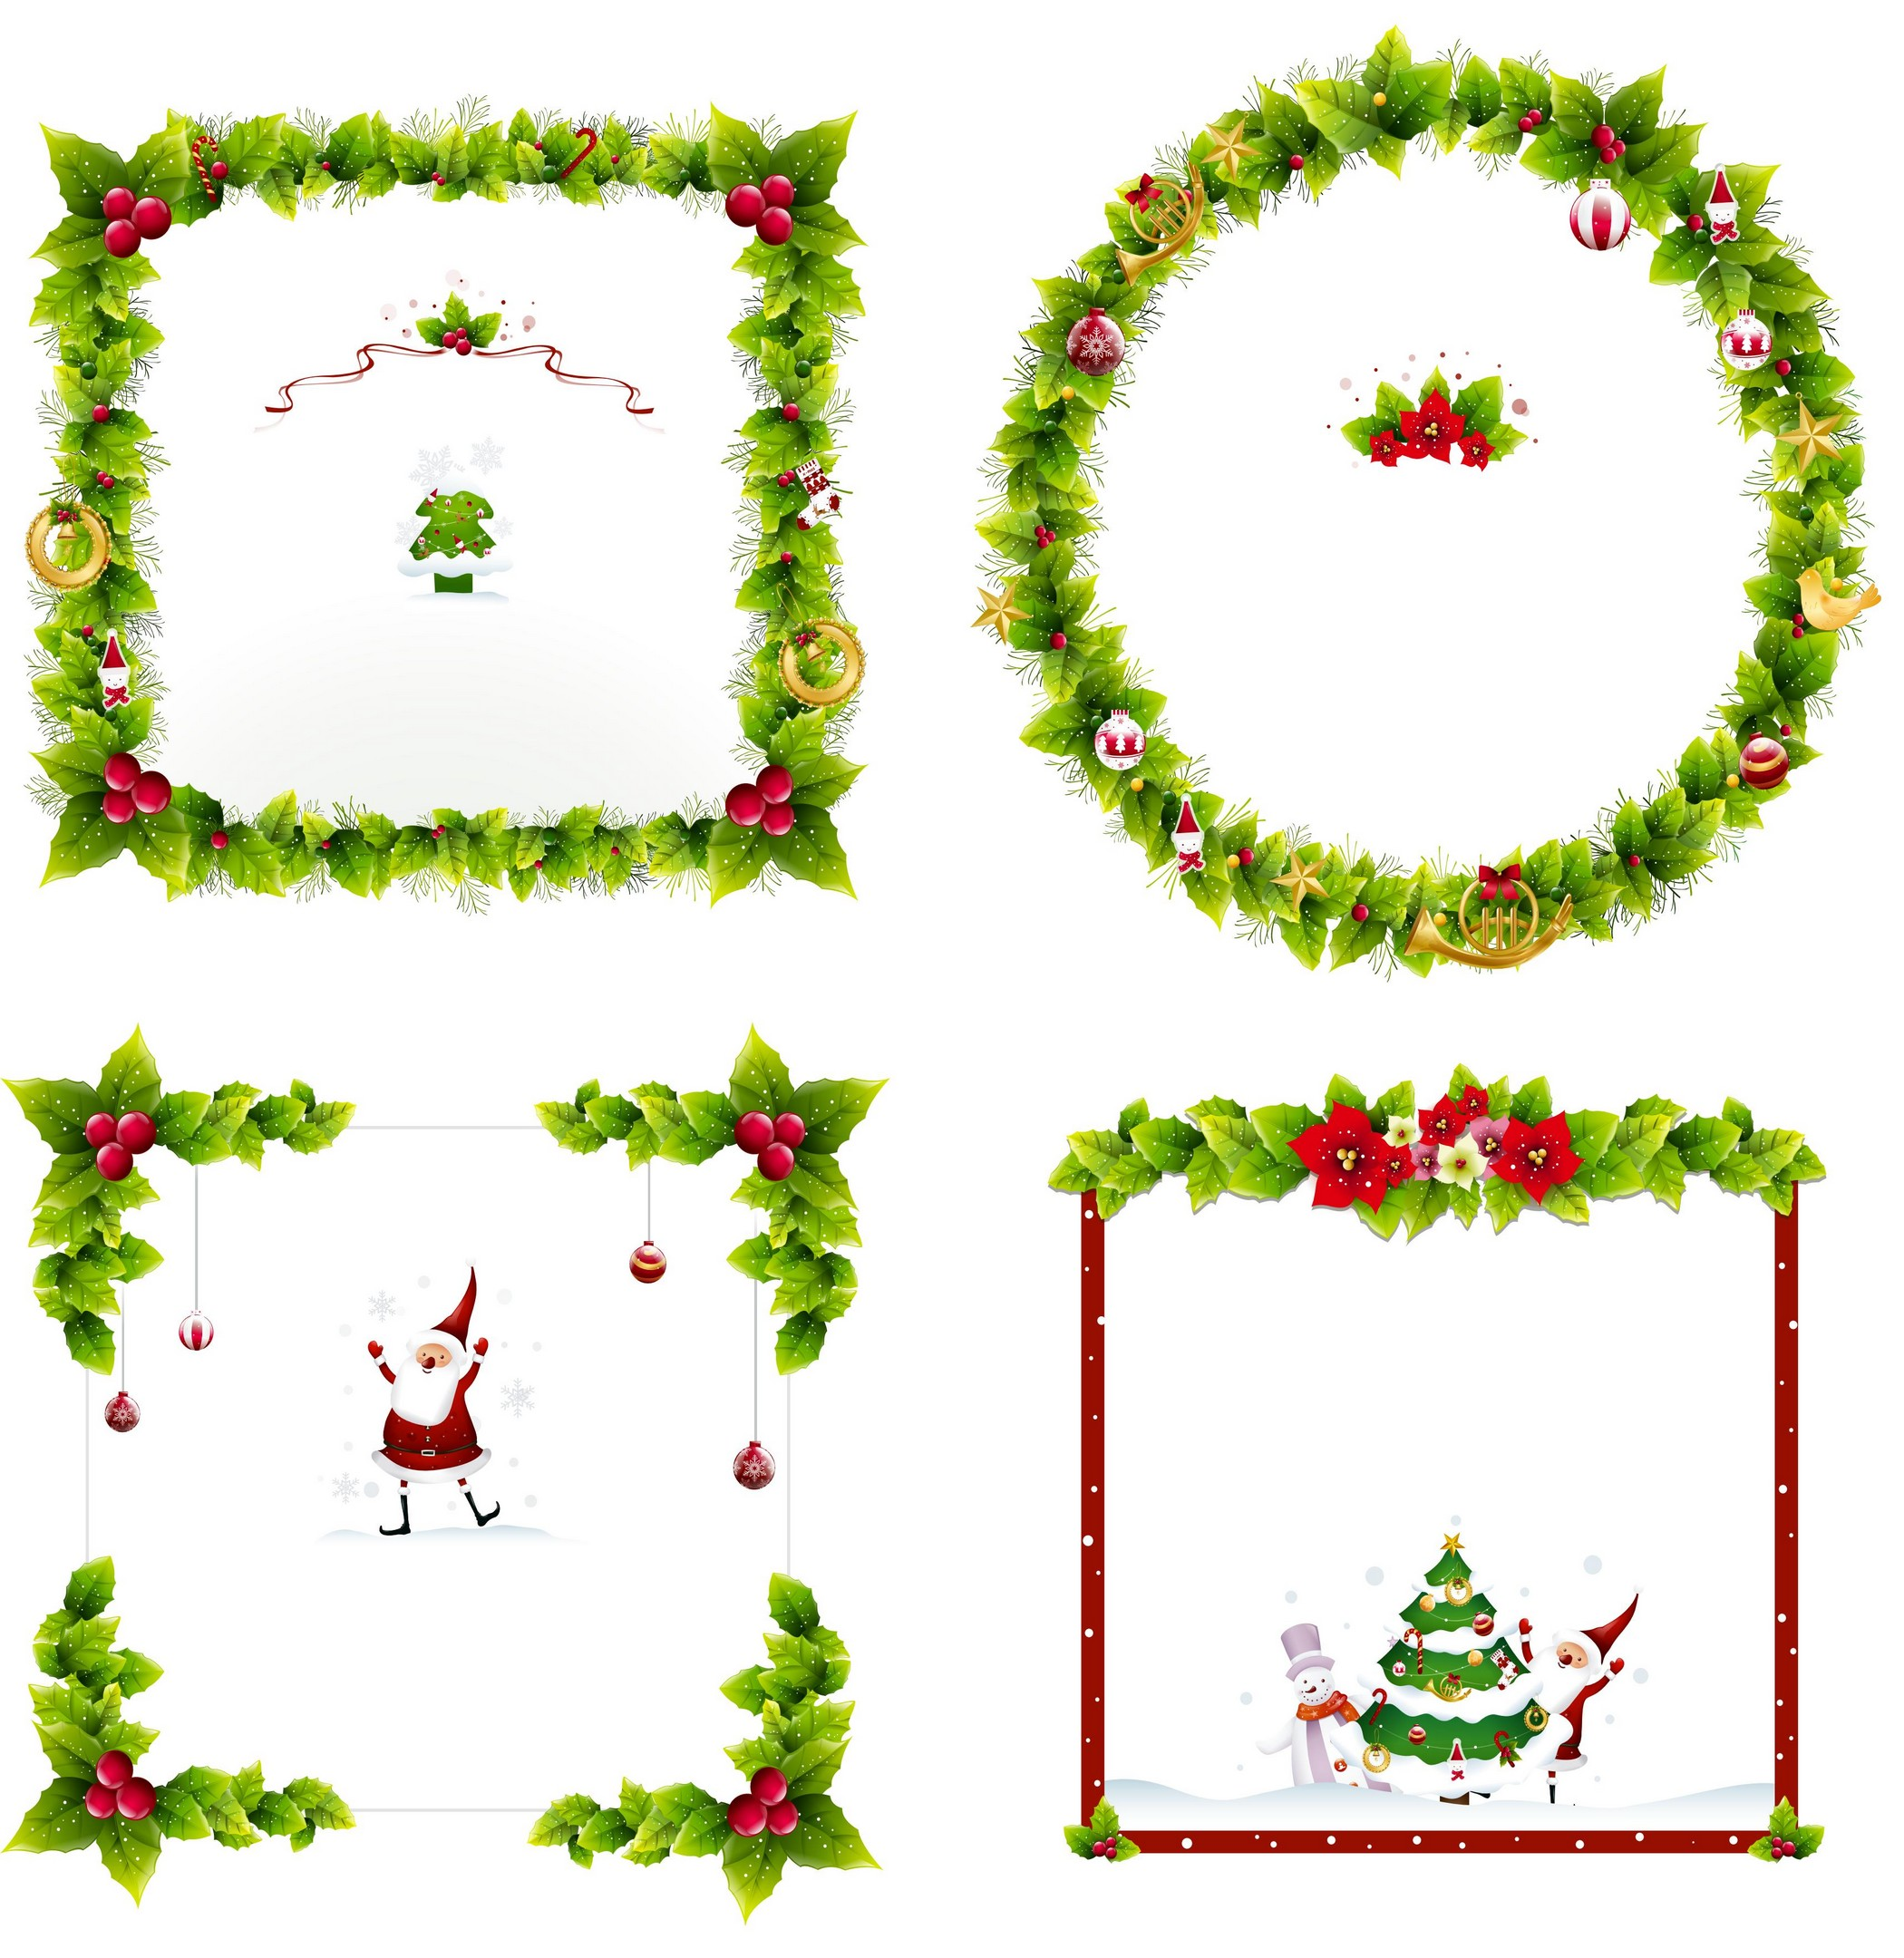 Free Christmas Logos Free, Download Free Clip Art, Free Clip Art on.